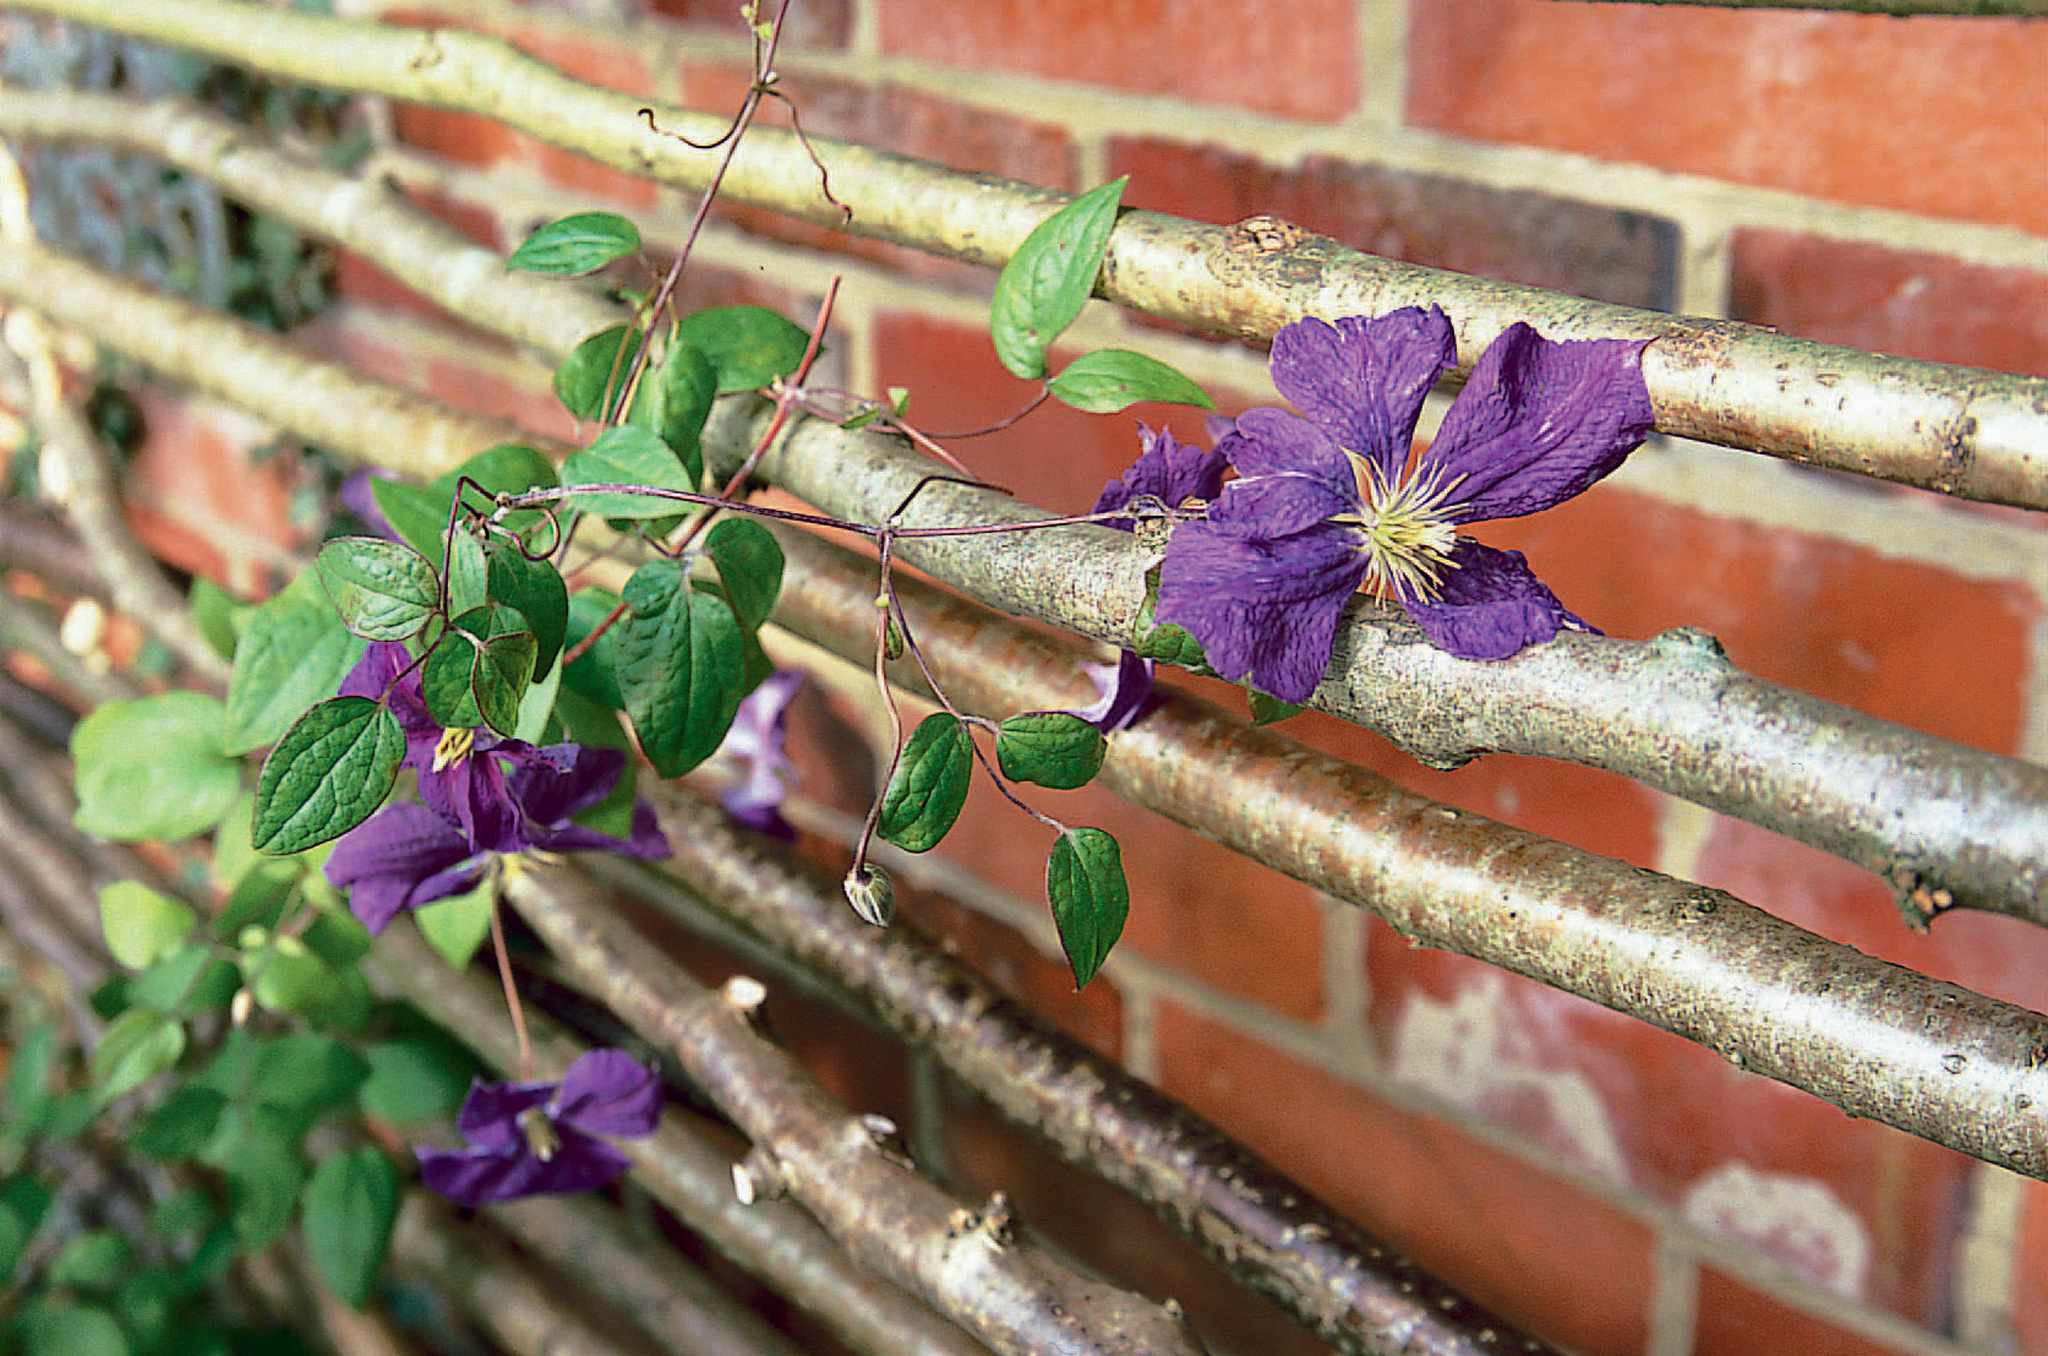 How to make a trellis from hazel poles